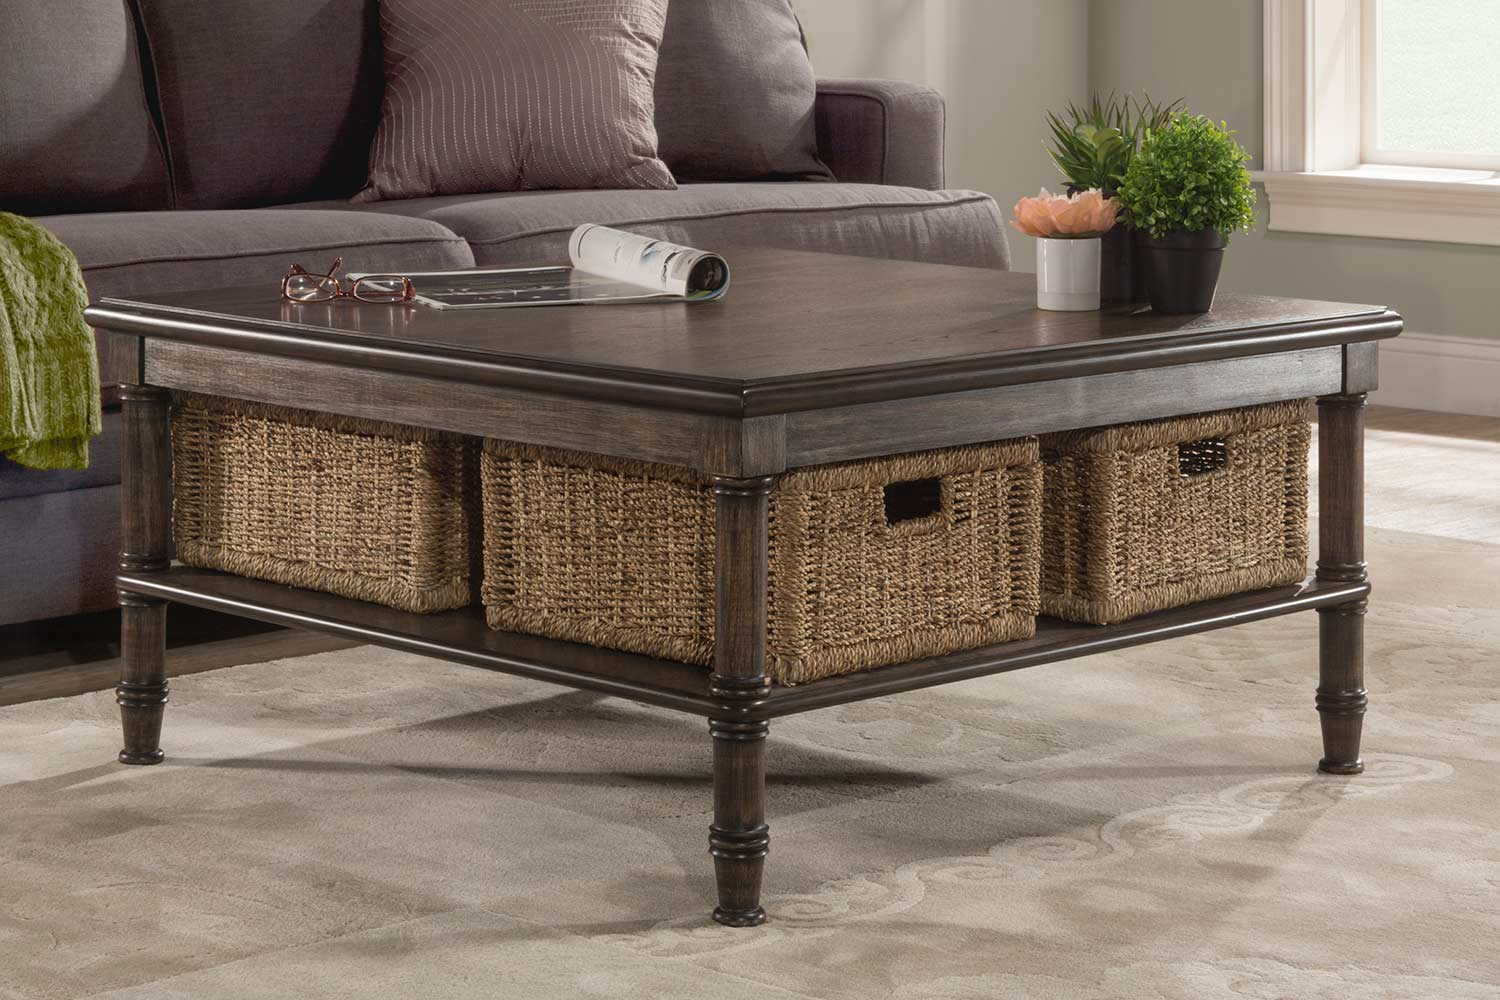 - Hillsdale Seneca Coffee Table With 4 Baskets - Walnut/Natural